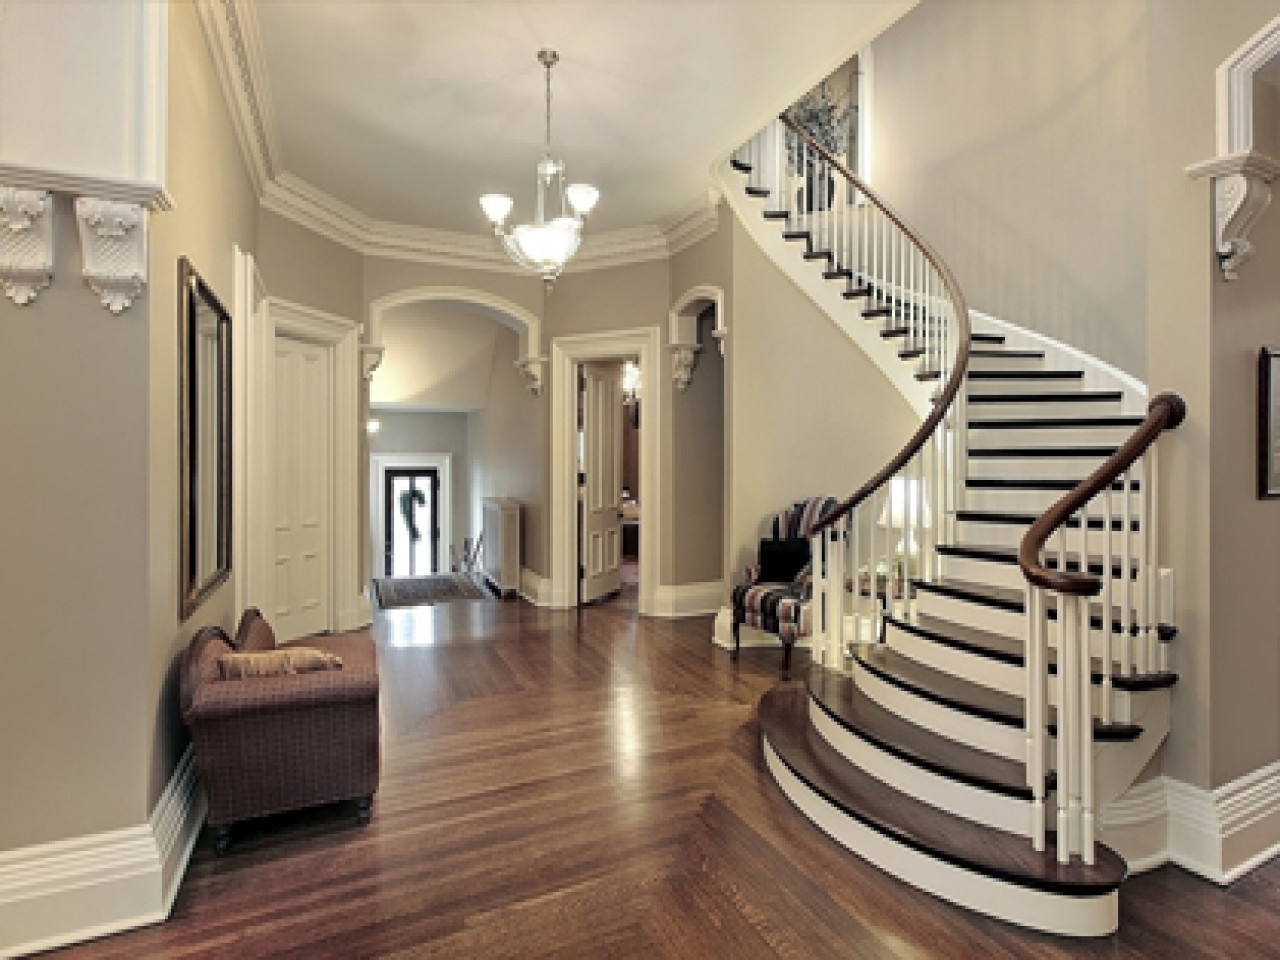 Best ideas about Best Interior Paint Colors . Save or Pin Painting exterior wood trim most popular interior paint Now.